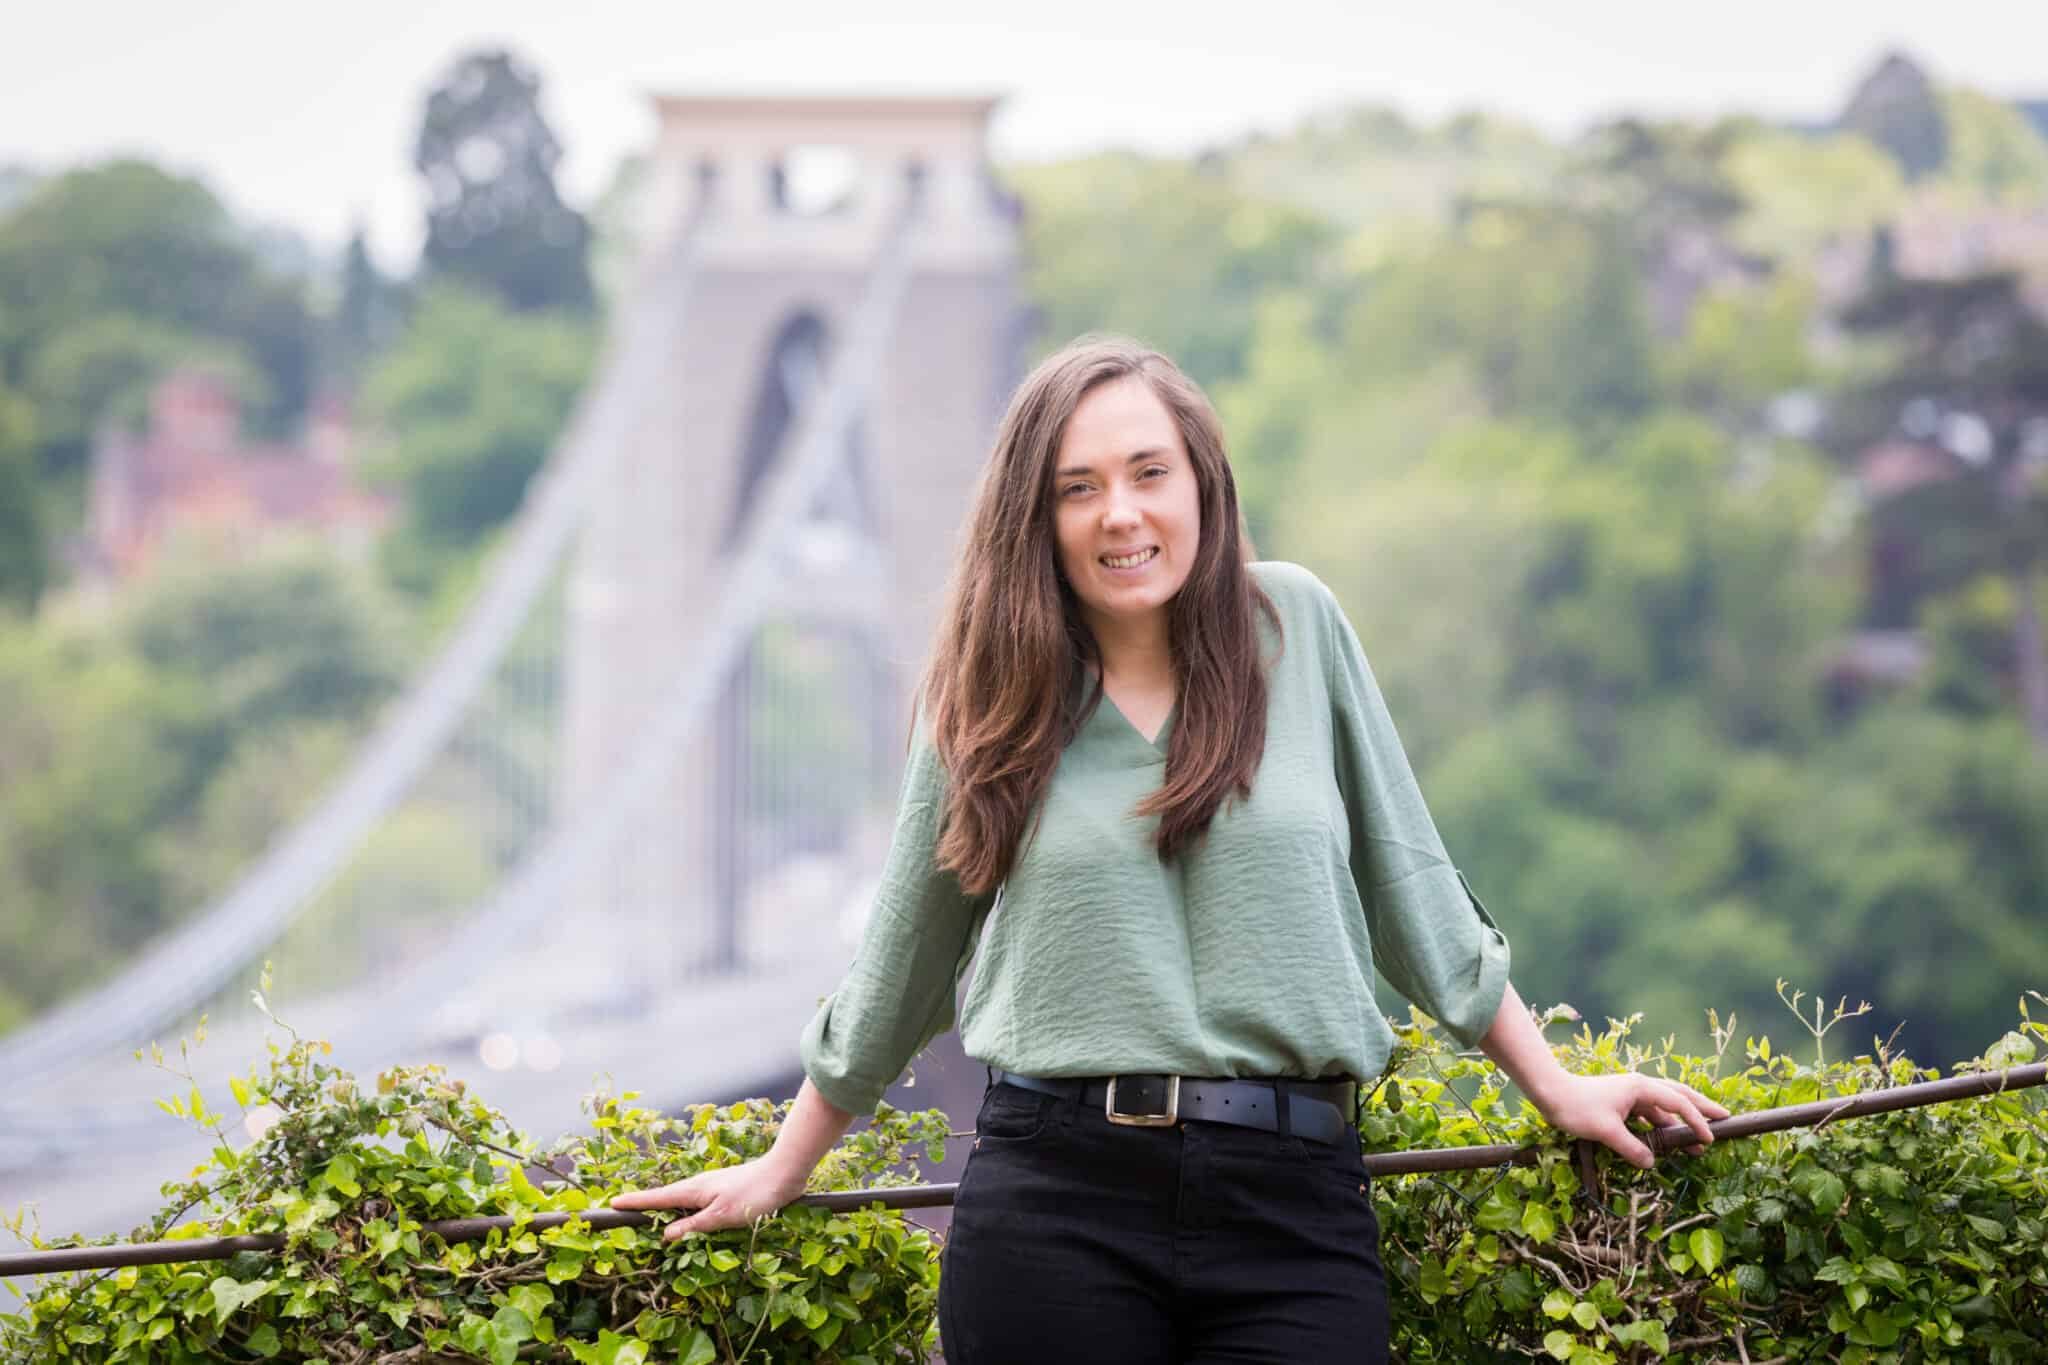 Jessie is leaning on a railing in front of Clifton Suspension Bridge. She is wearing a green blouse and black jeans.